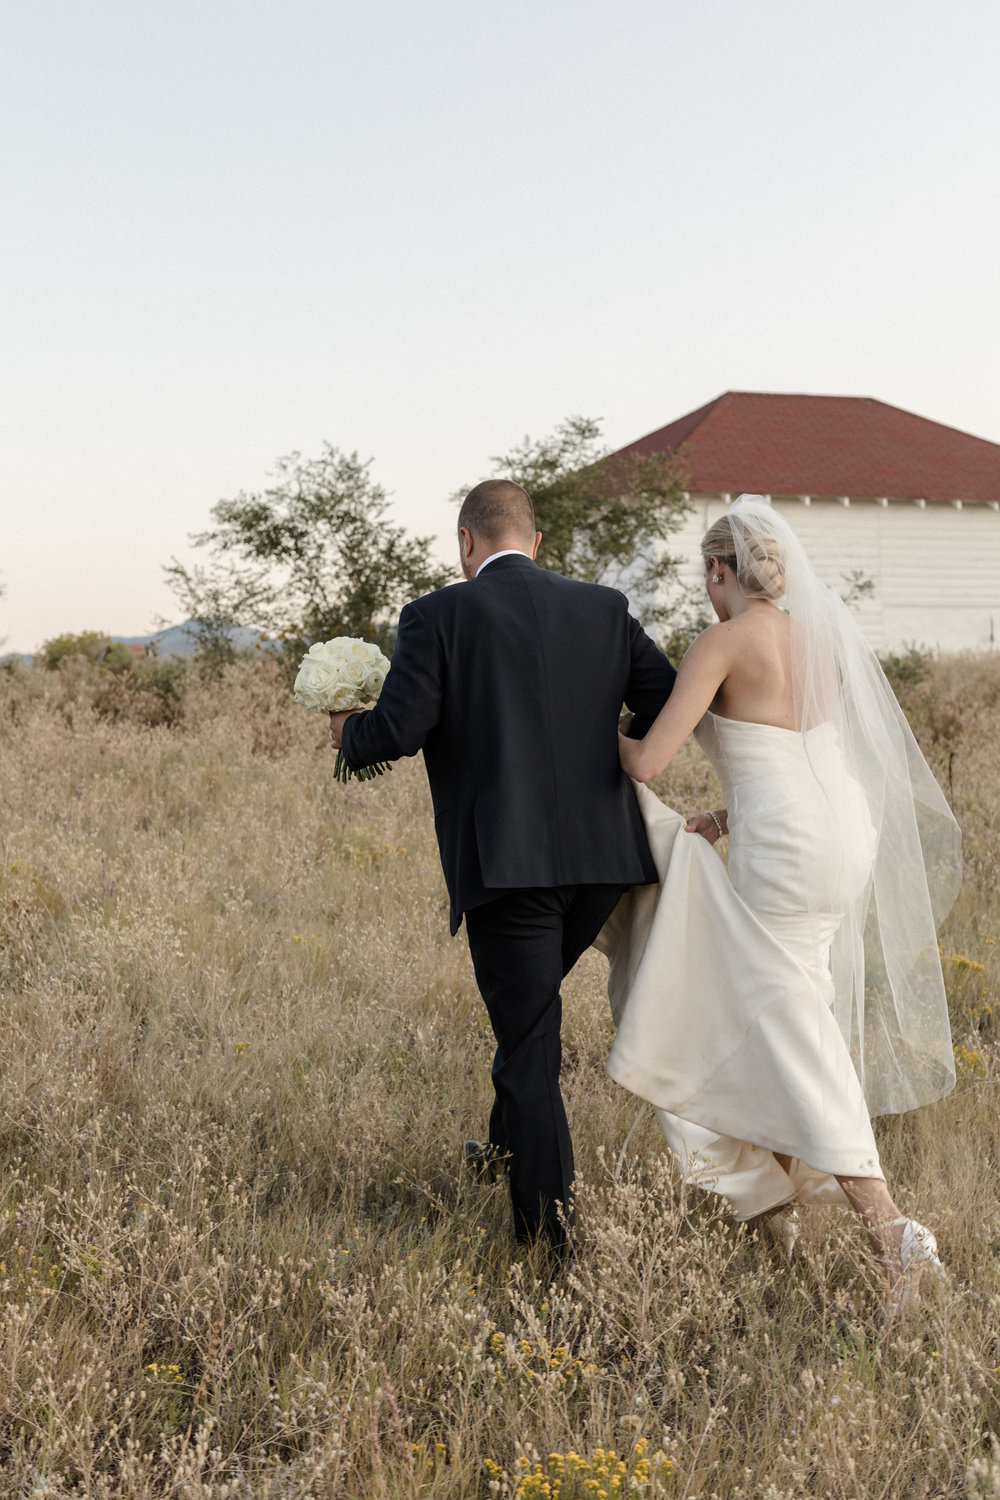 Hailley+Howard_Colorado+Wedding_The+Manor+House-508.jpg